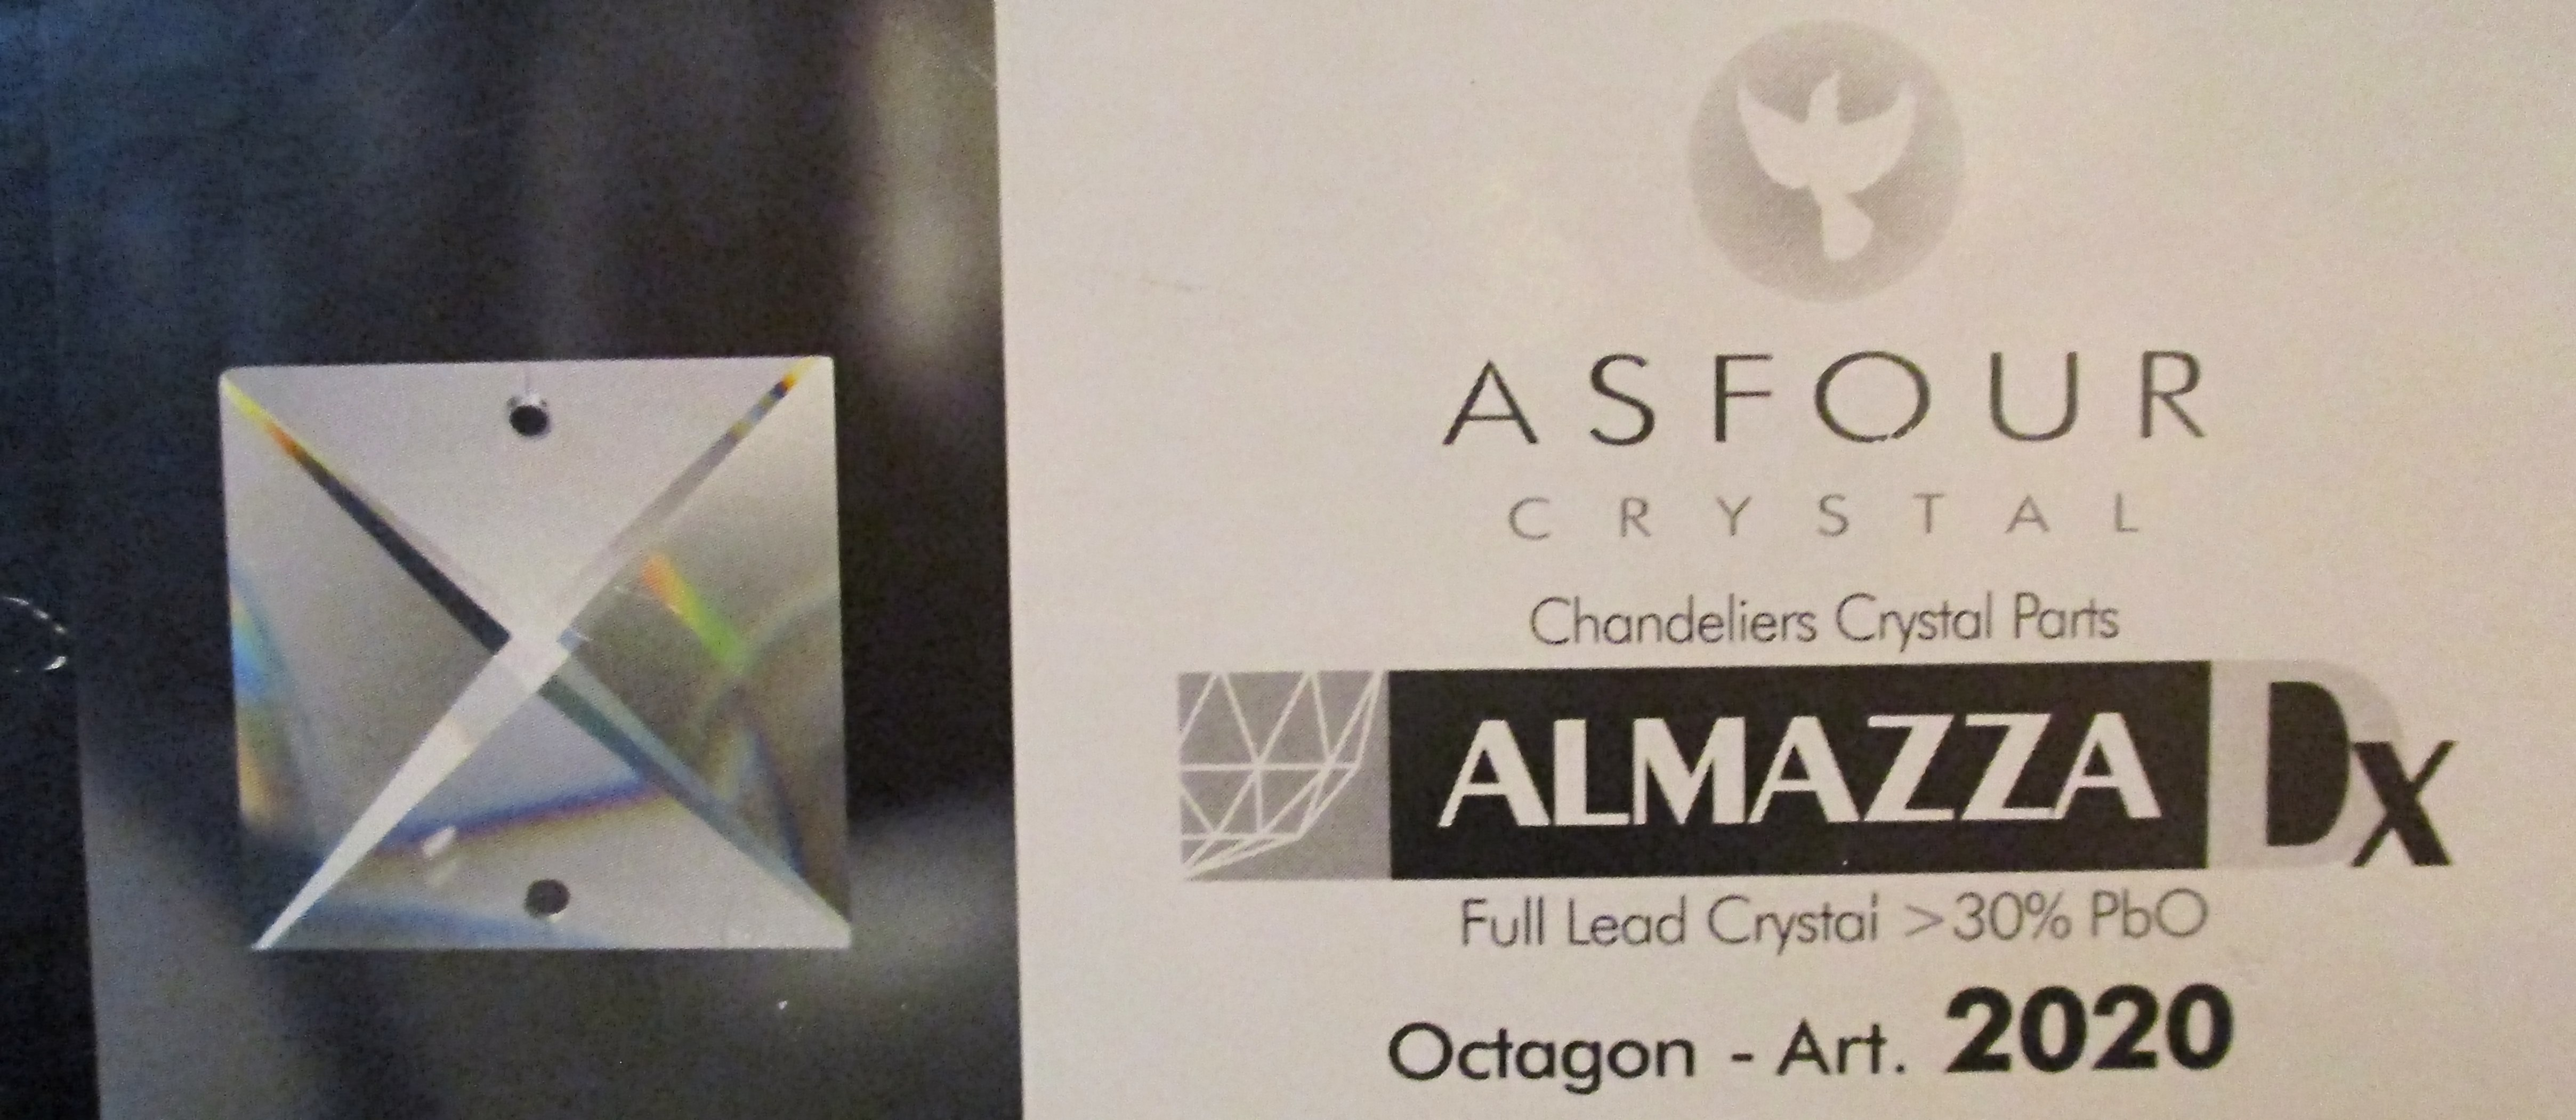 Asfour Crystal 2020 - 61